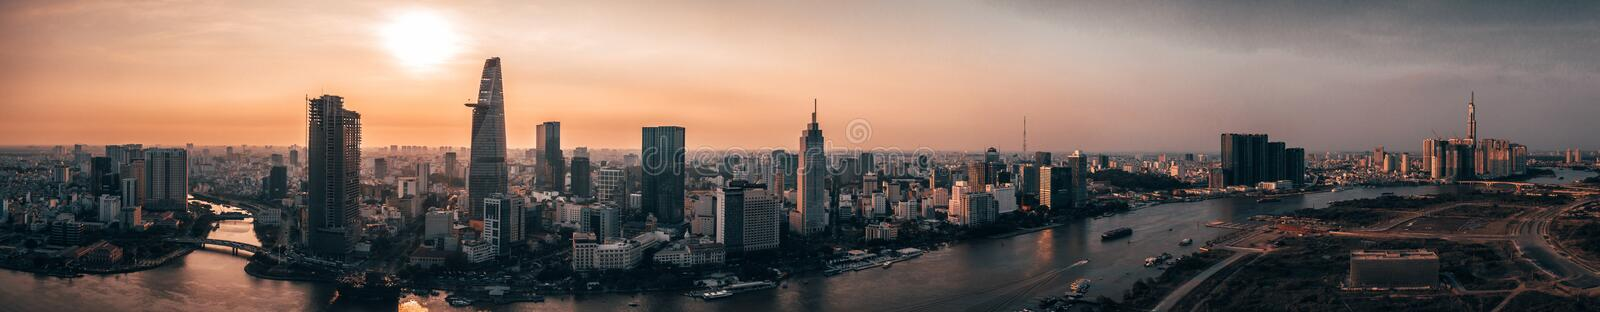 Foto aérea do zangão - skyline de Saigon Ho Chi Minh City no por do sol vietnam imagem de stock royalty free